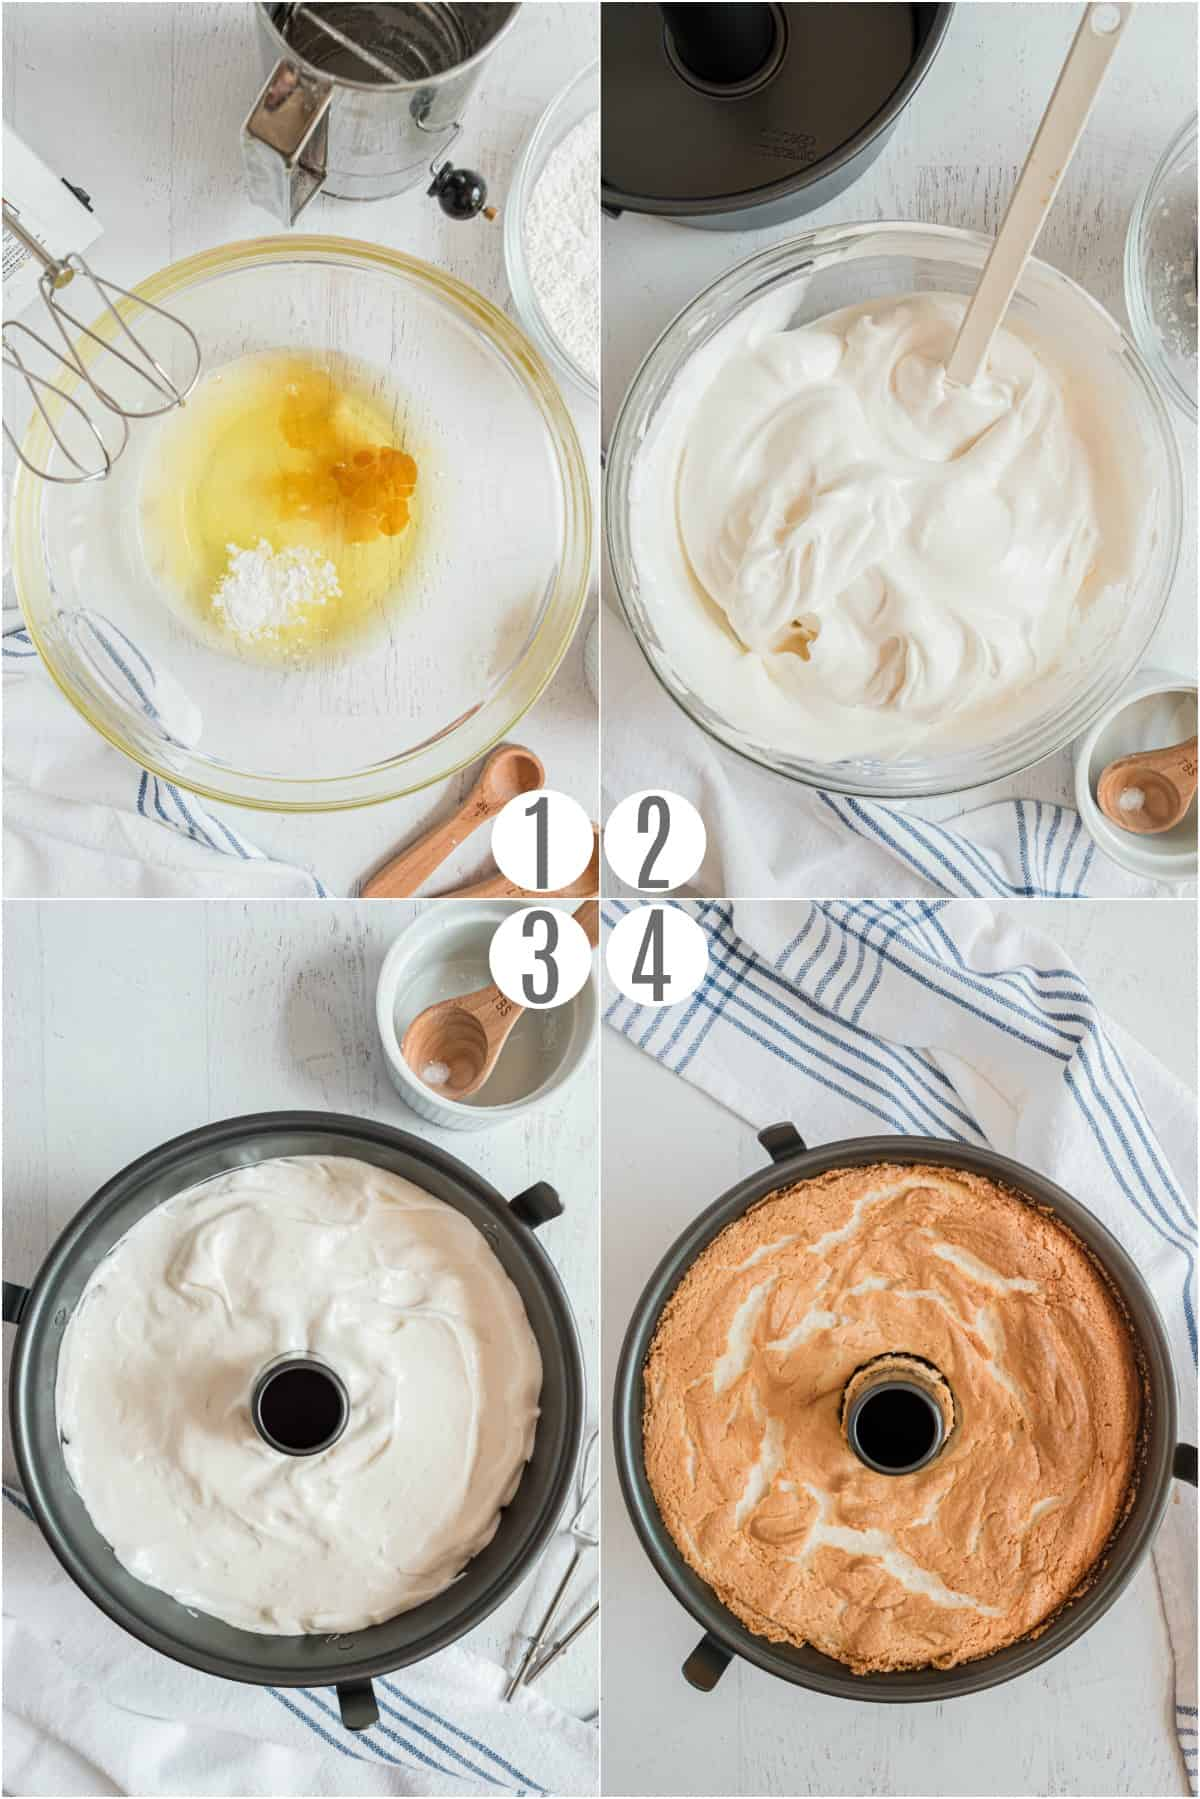 Step by step photos showing how to make angel food cake.